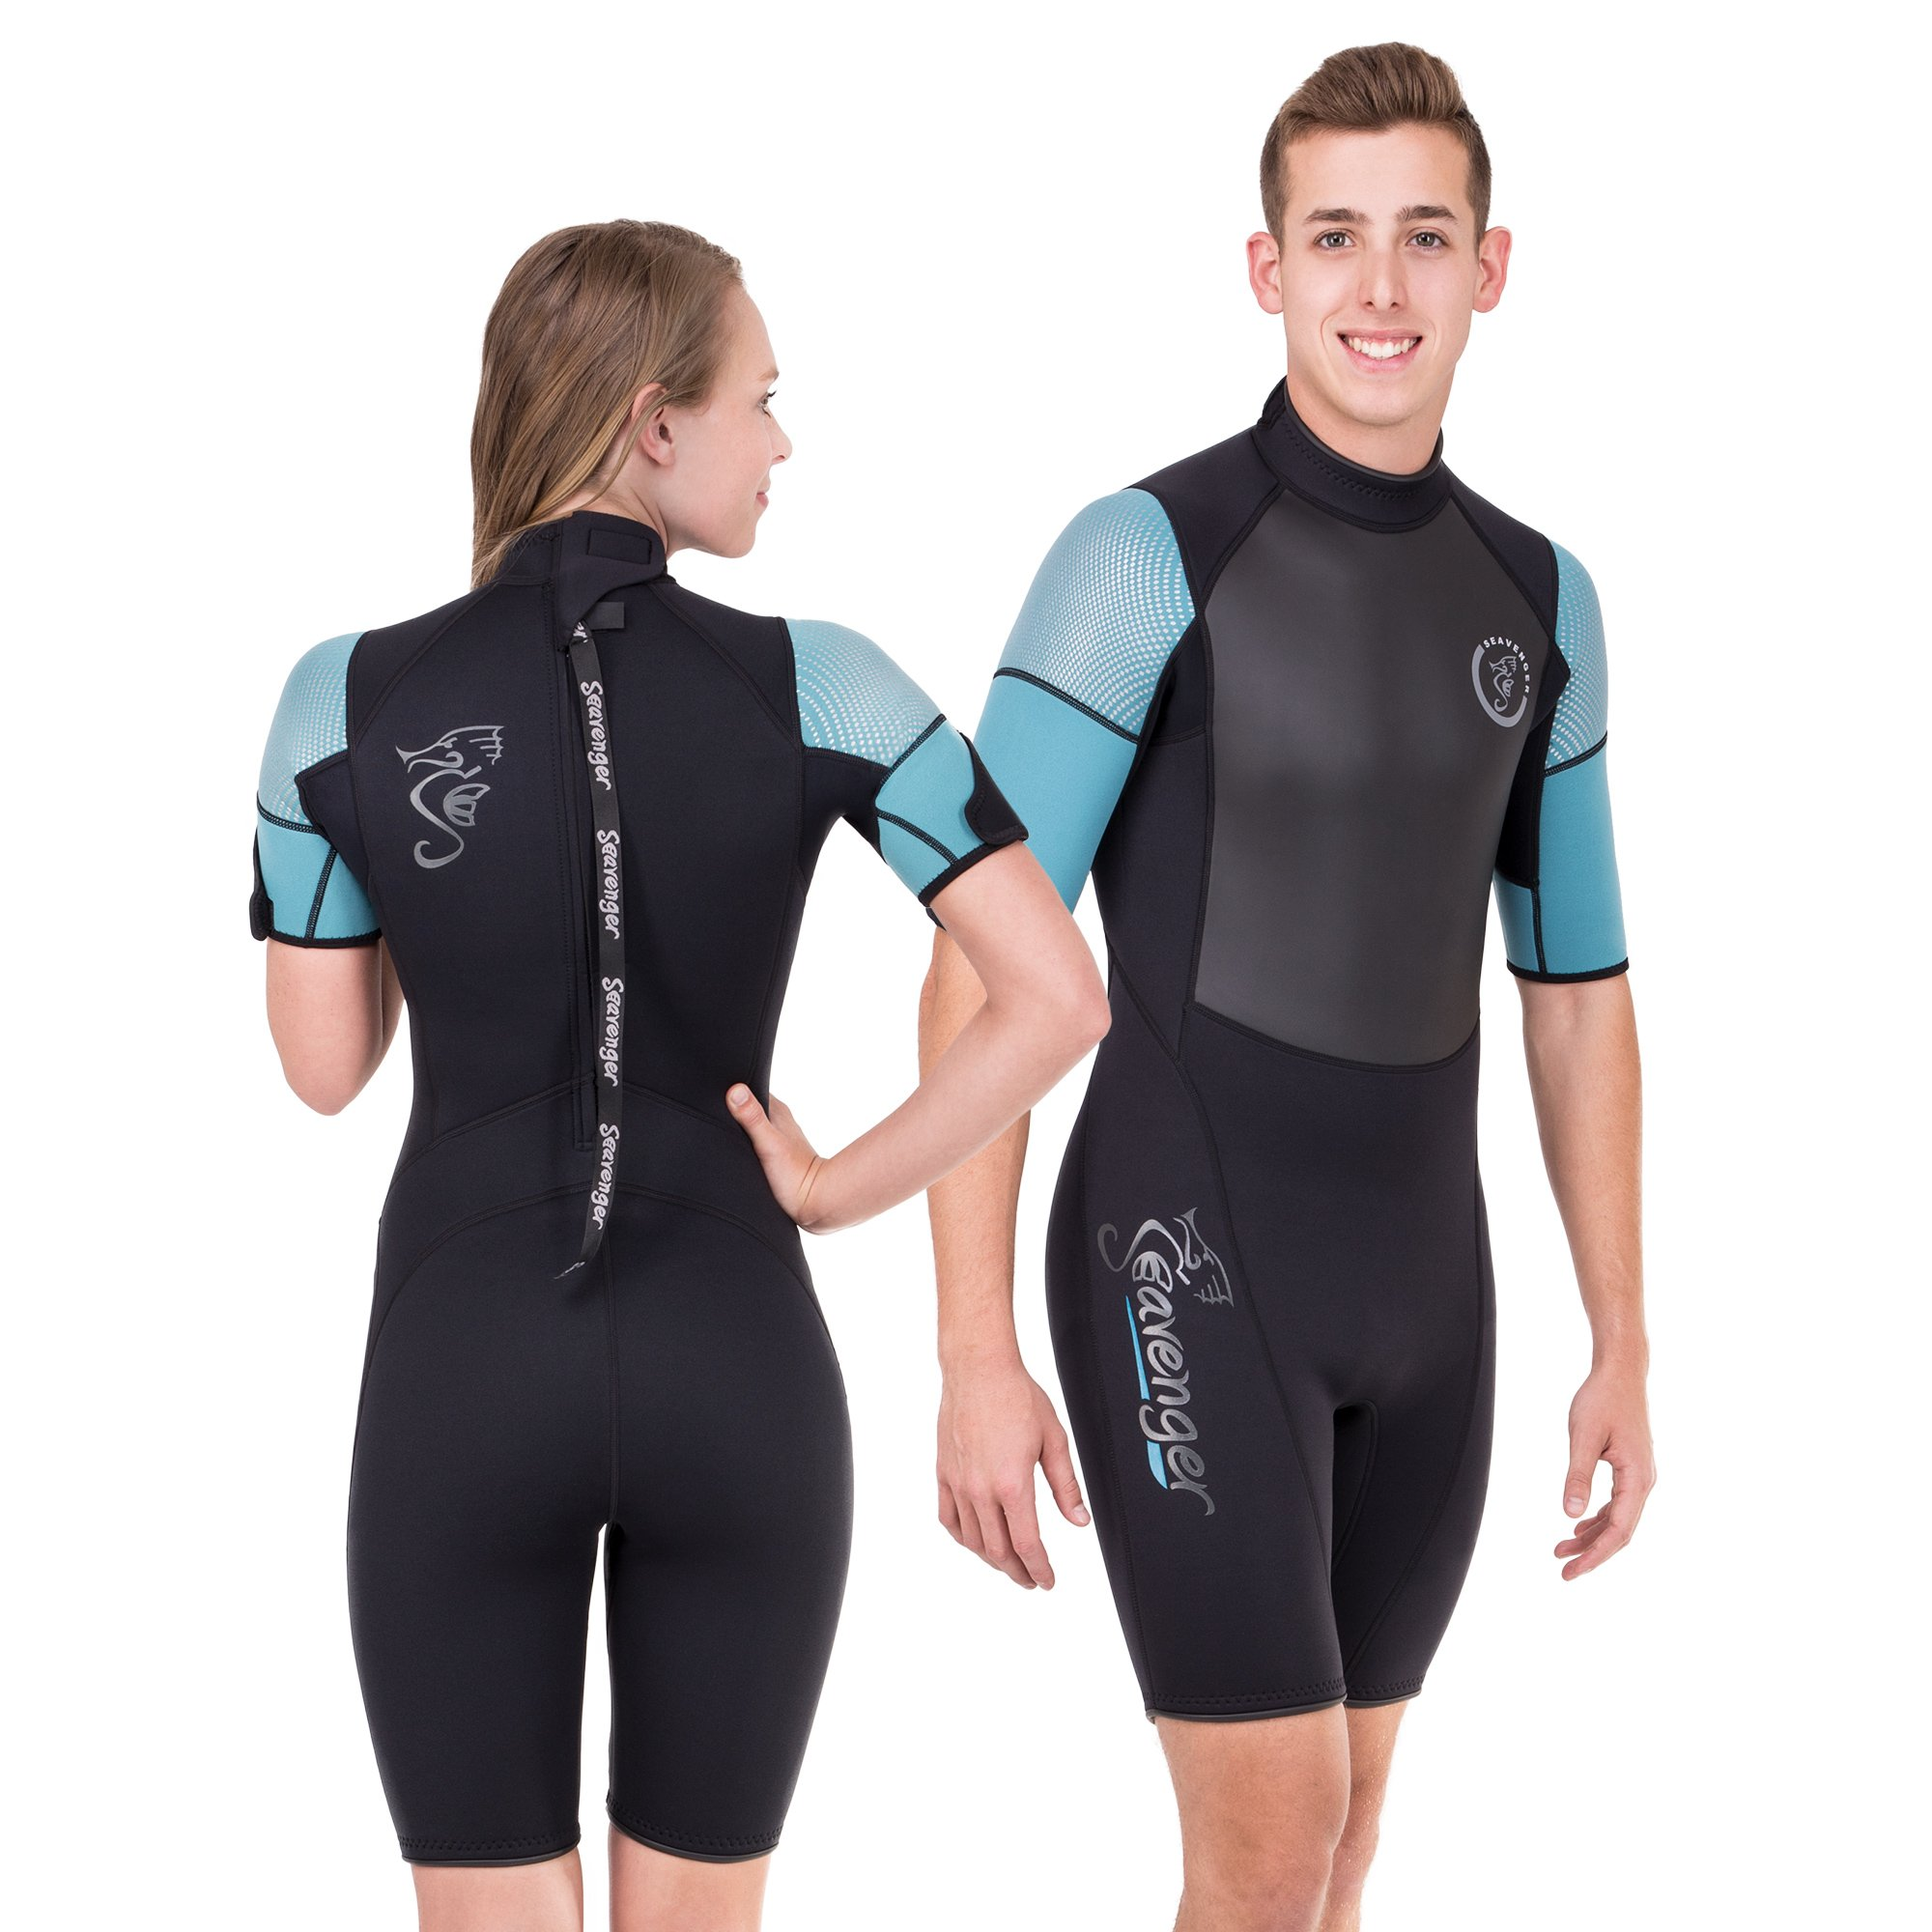 Seavenger Navigator 3mm Shorty | Short Sleeve Wetsuit for Men and Women | Surfing, Snorkeling, Scuba Diving (Surfing Aqua, Men's X-Small) by Seavenger